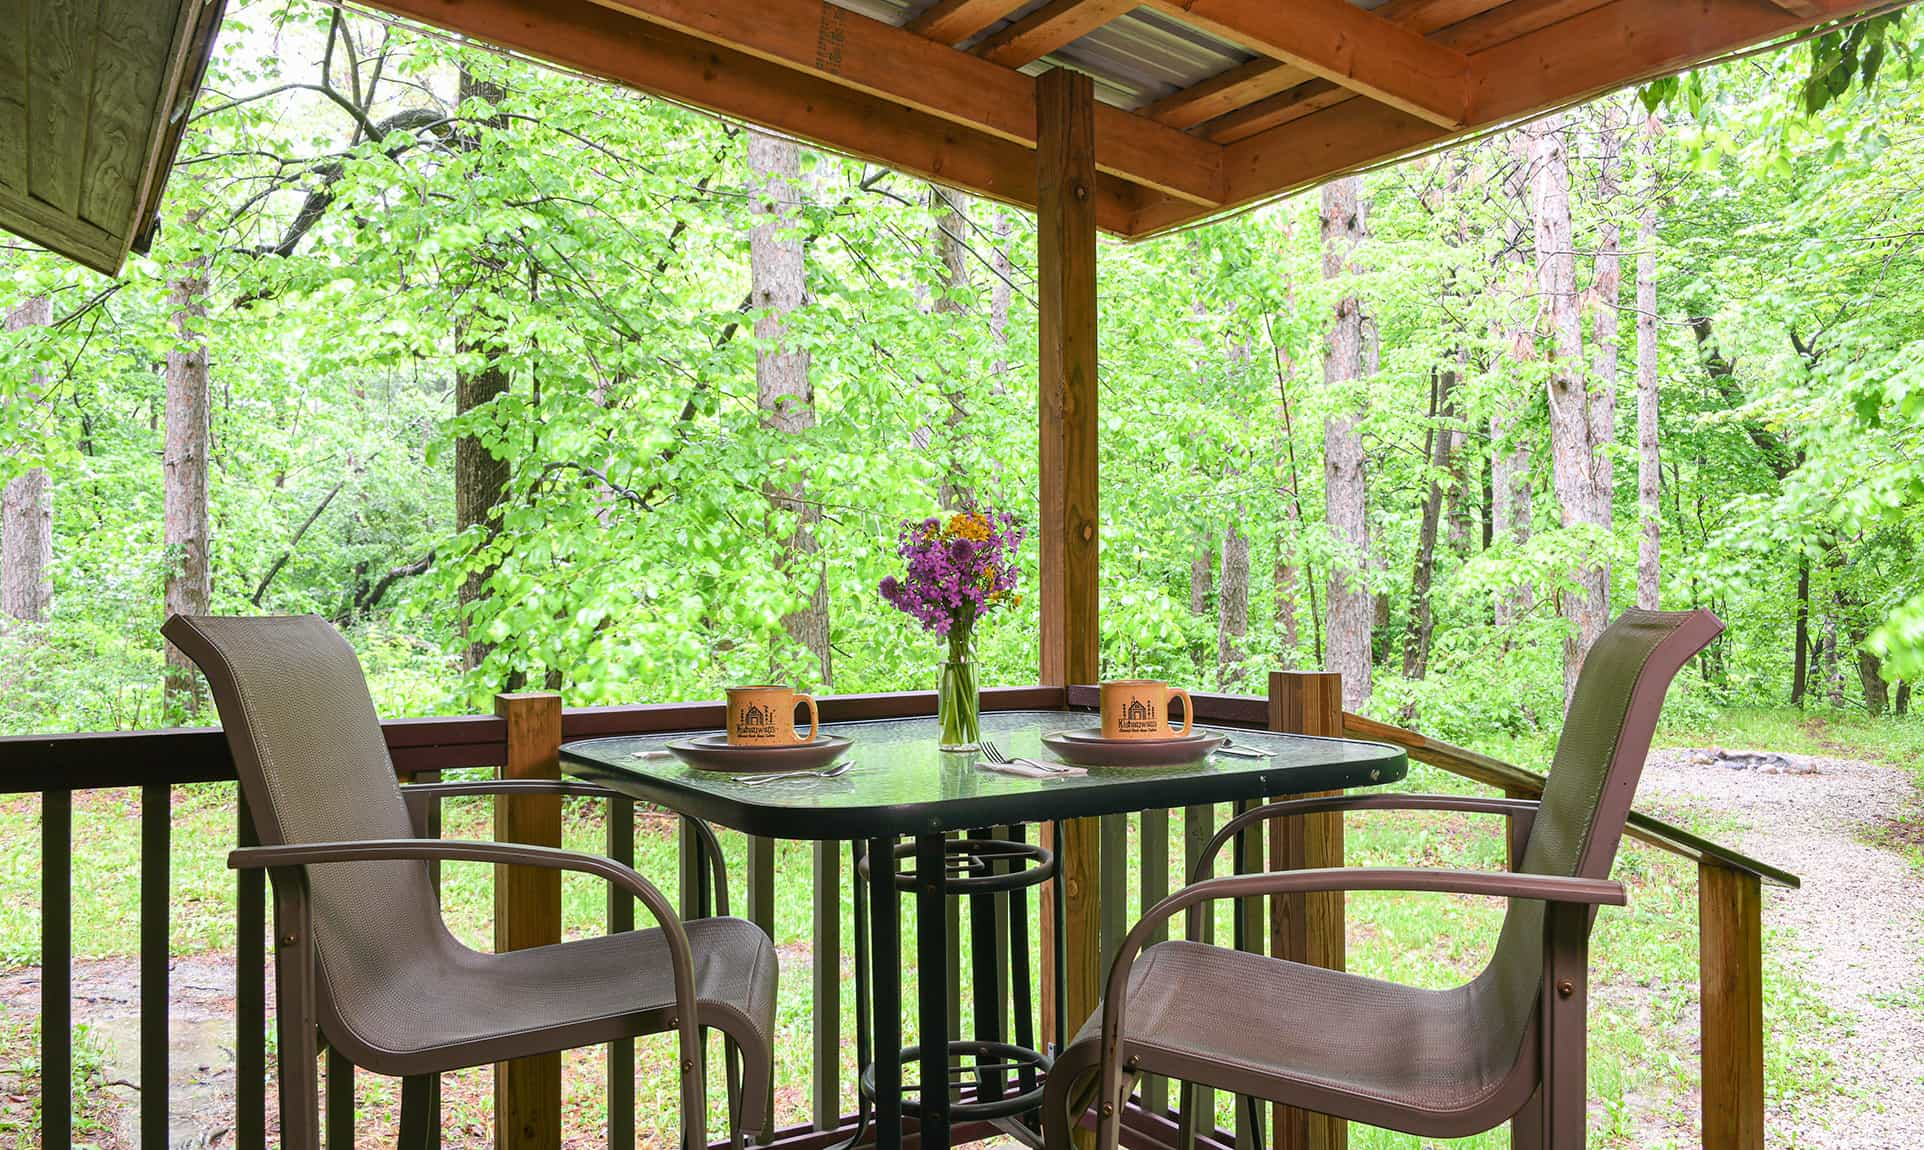 outdoor deck for dining in a rustic cabin getaway near Chicago